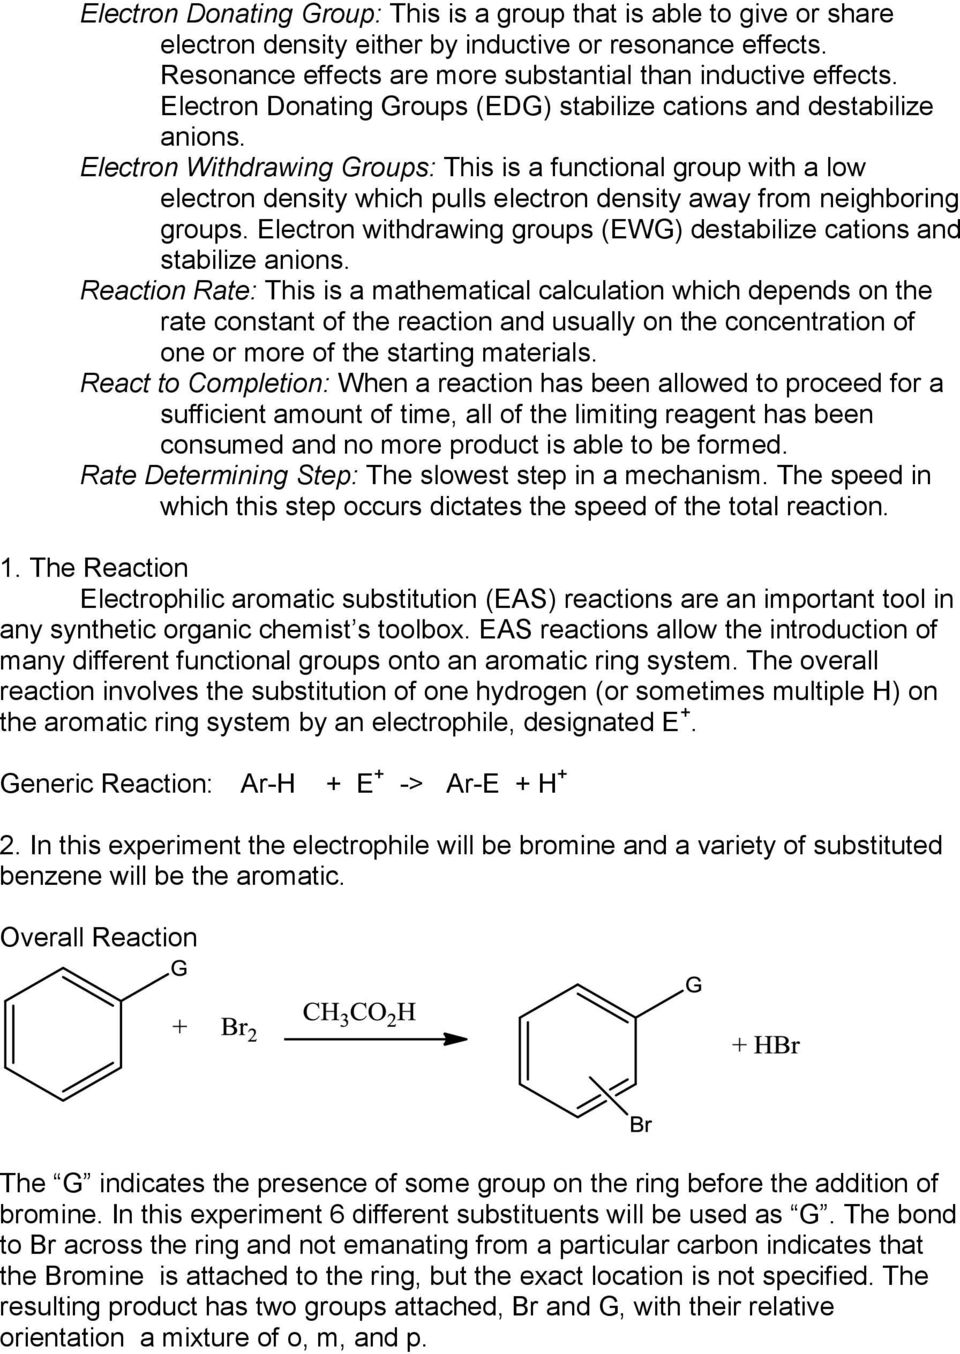 withdrawing groups (EWG) destabilize cations and stabilize anions.